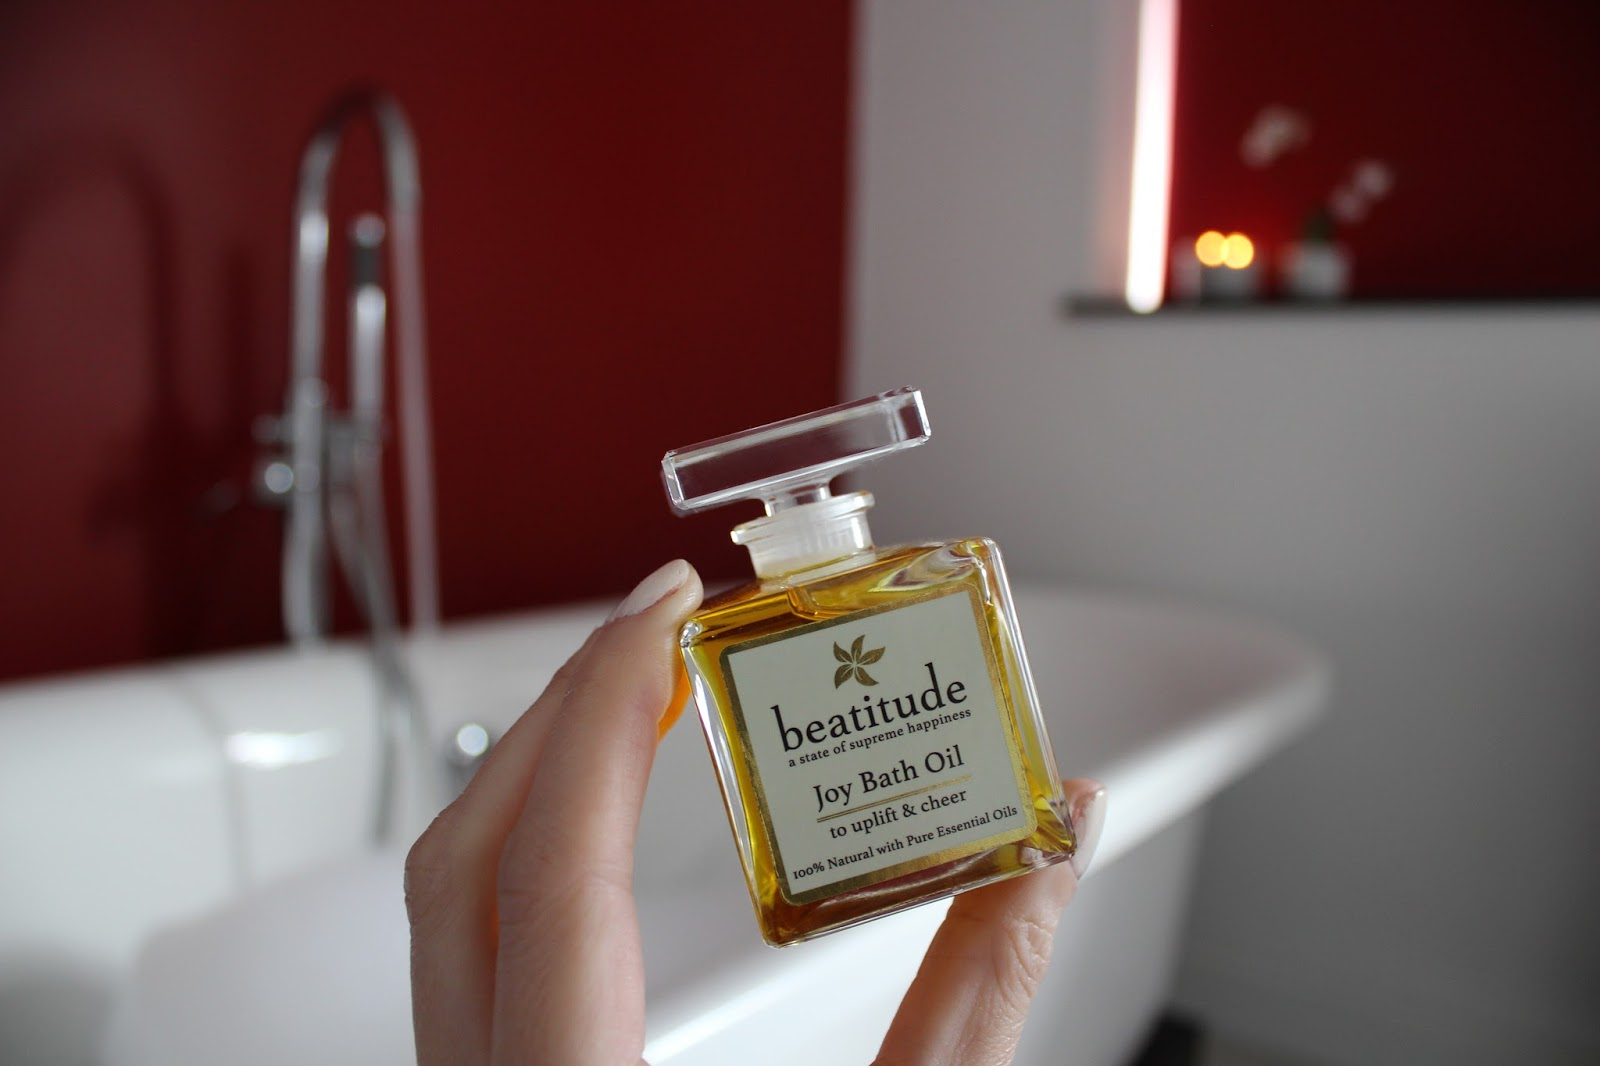 Review of Joy Bath Oil by Beatitude Products - 2